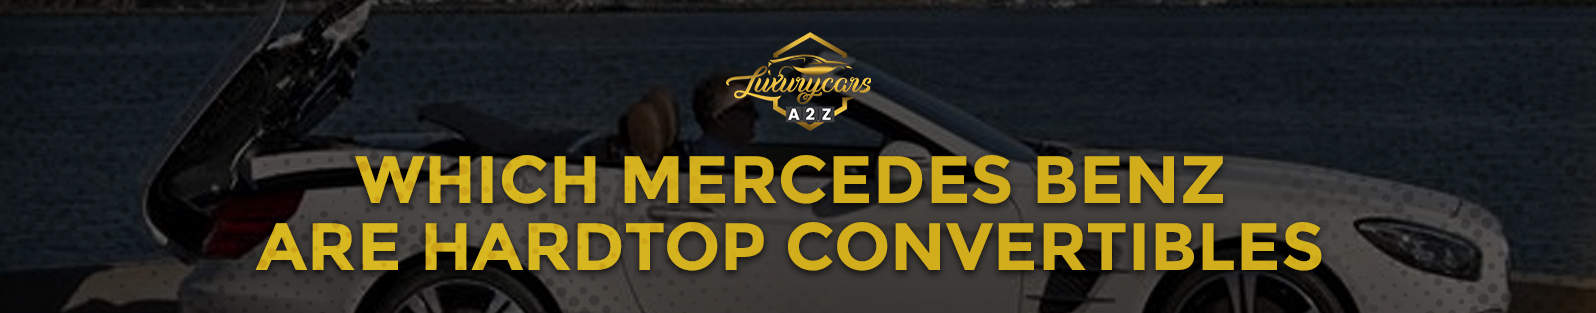 which mercedes benz are hardtop convertibles